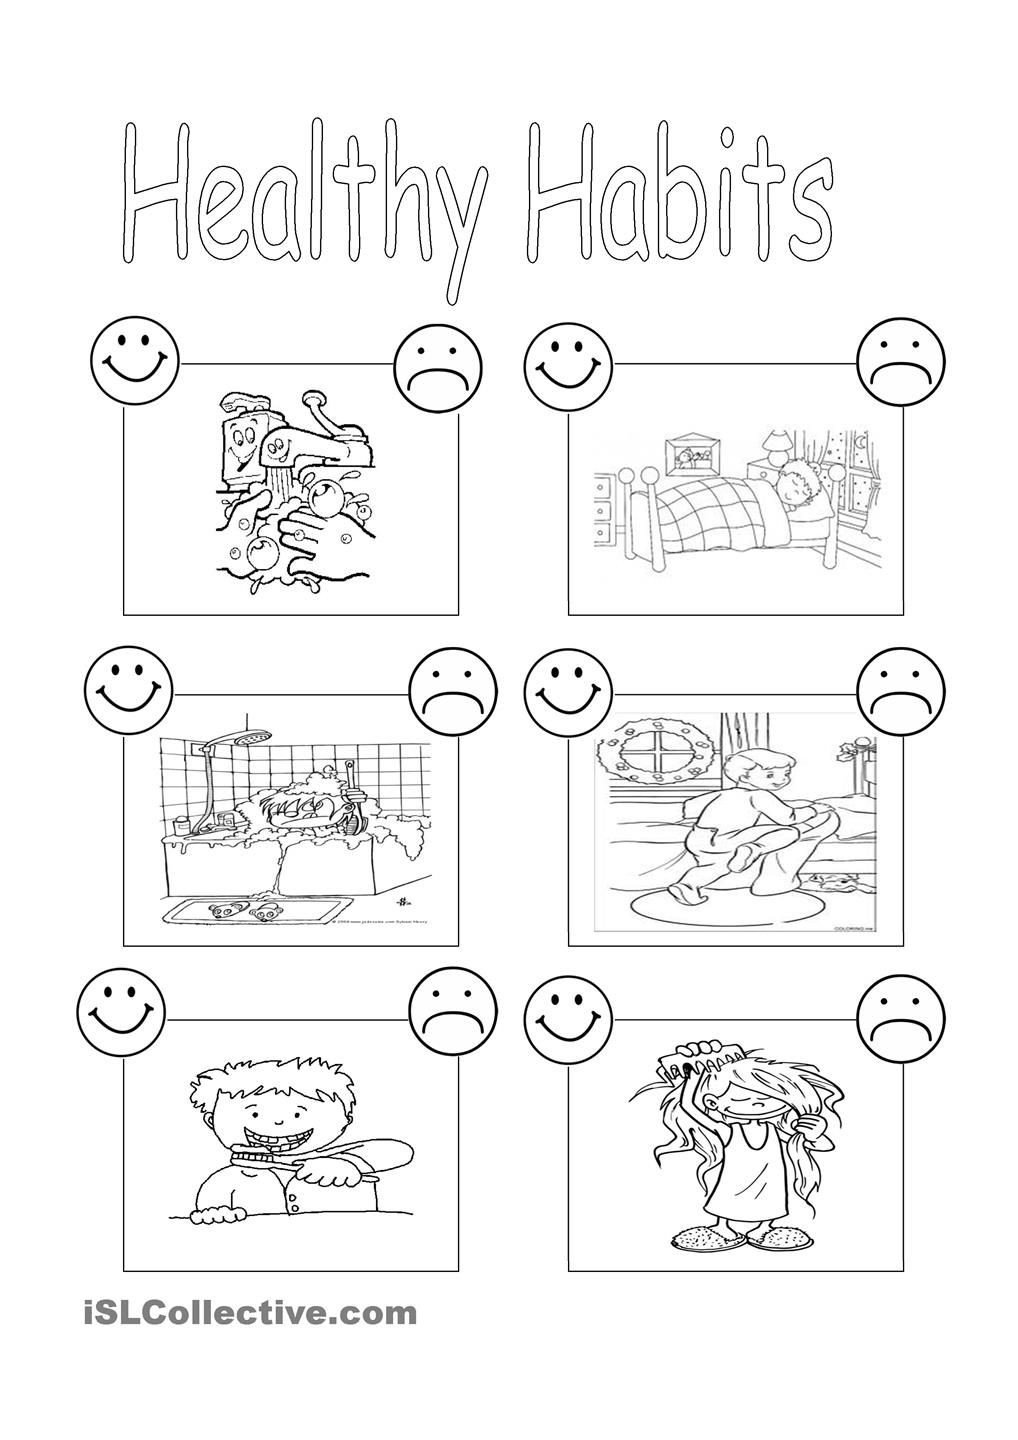 7 Habits for Kids Worksheets Healthy Habits